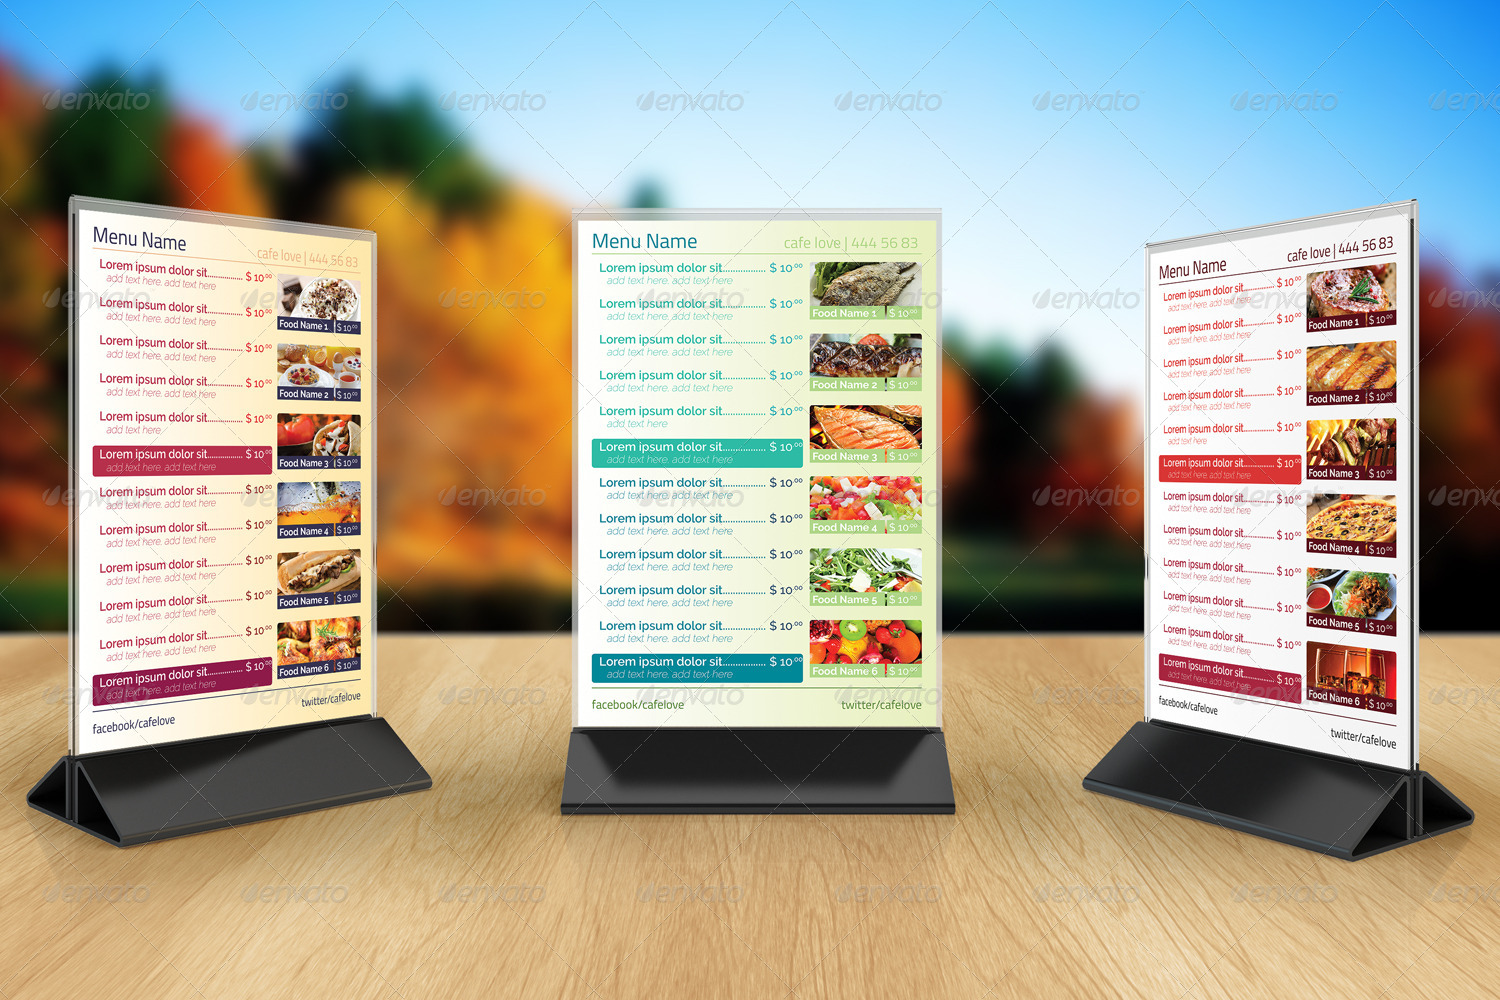 Preview Image Set/01_preview1.jpg ... : table tent menu - memphite.com